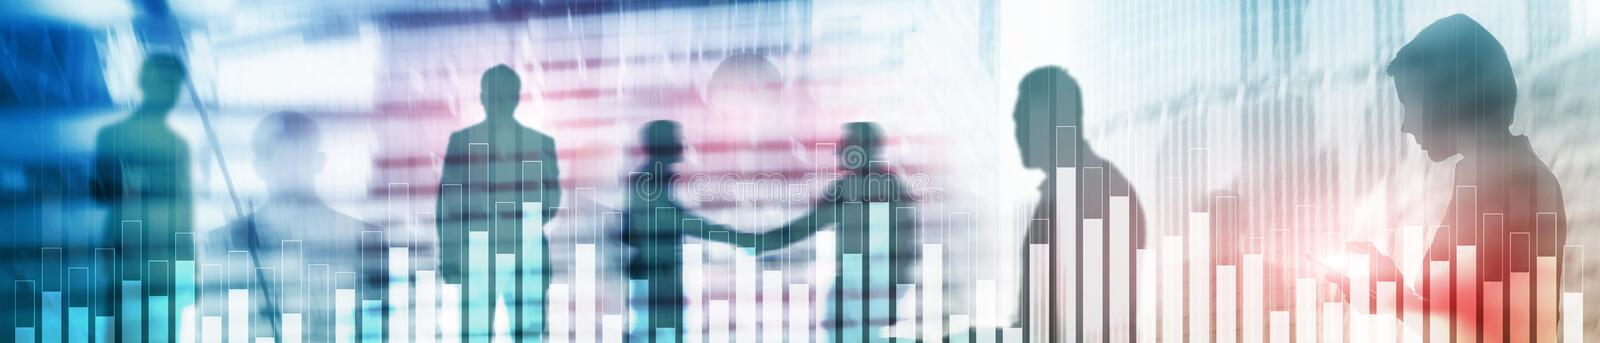 Business and finance graph on blurred background. Trading, investment and economics concept. Website header banner. Business and finance graph on blurred stock image